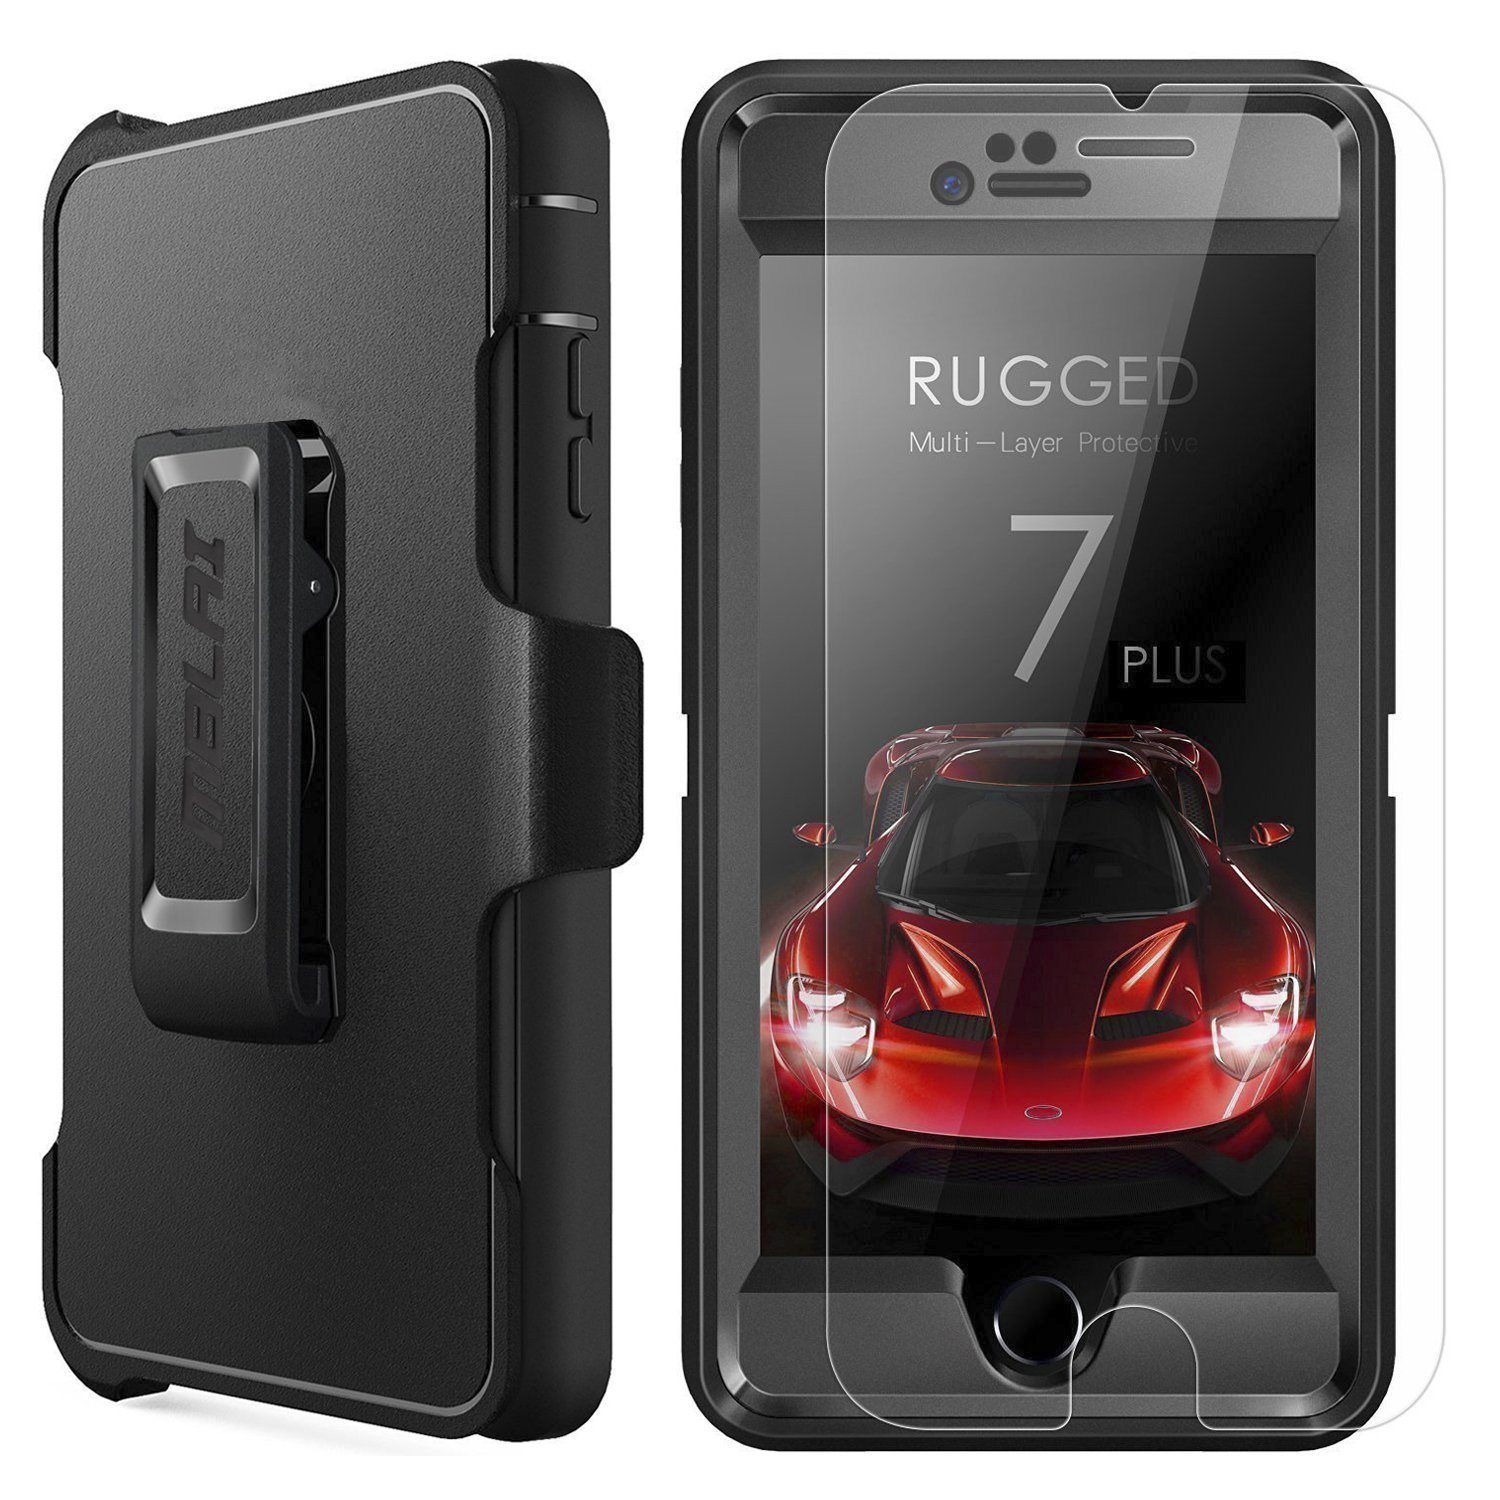 MBLAI Defender Case for iPhone 7 Plus, iPhone 8 Plus Case with Belt Clip(ONLY). Kickstand, Holster, Heavy Duty, Separate Screen Glass Protection Included - Retail Packaging-Black by MBLAI